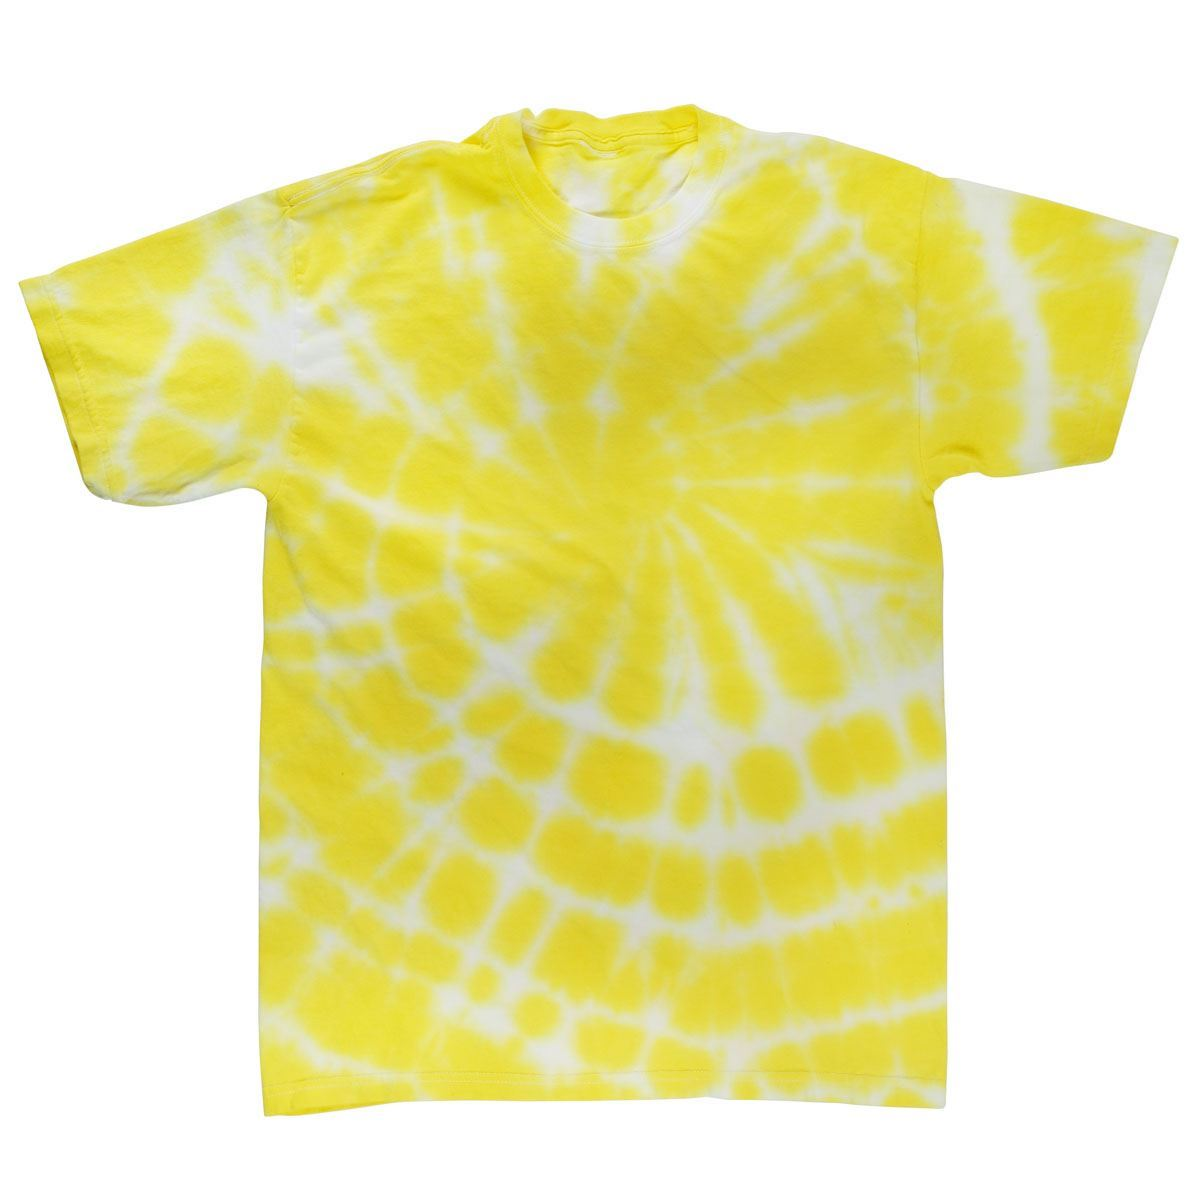 Yellow Tie Dye T-shirt